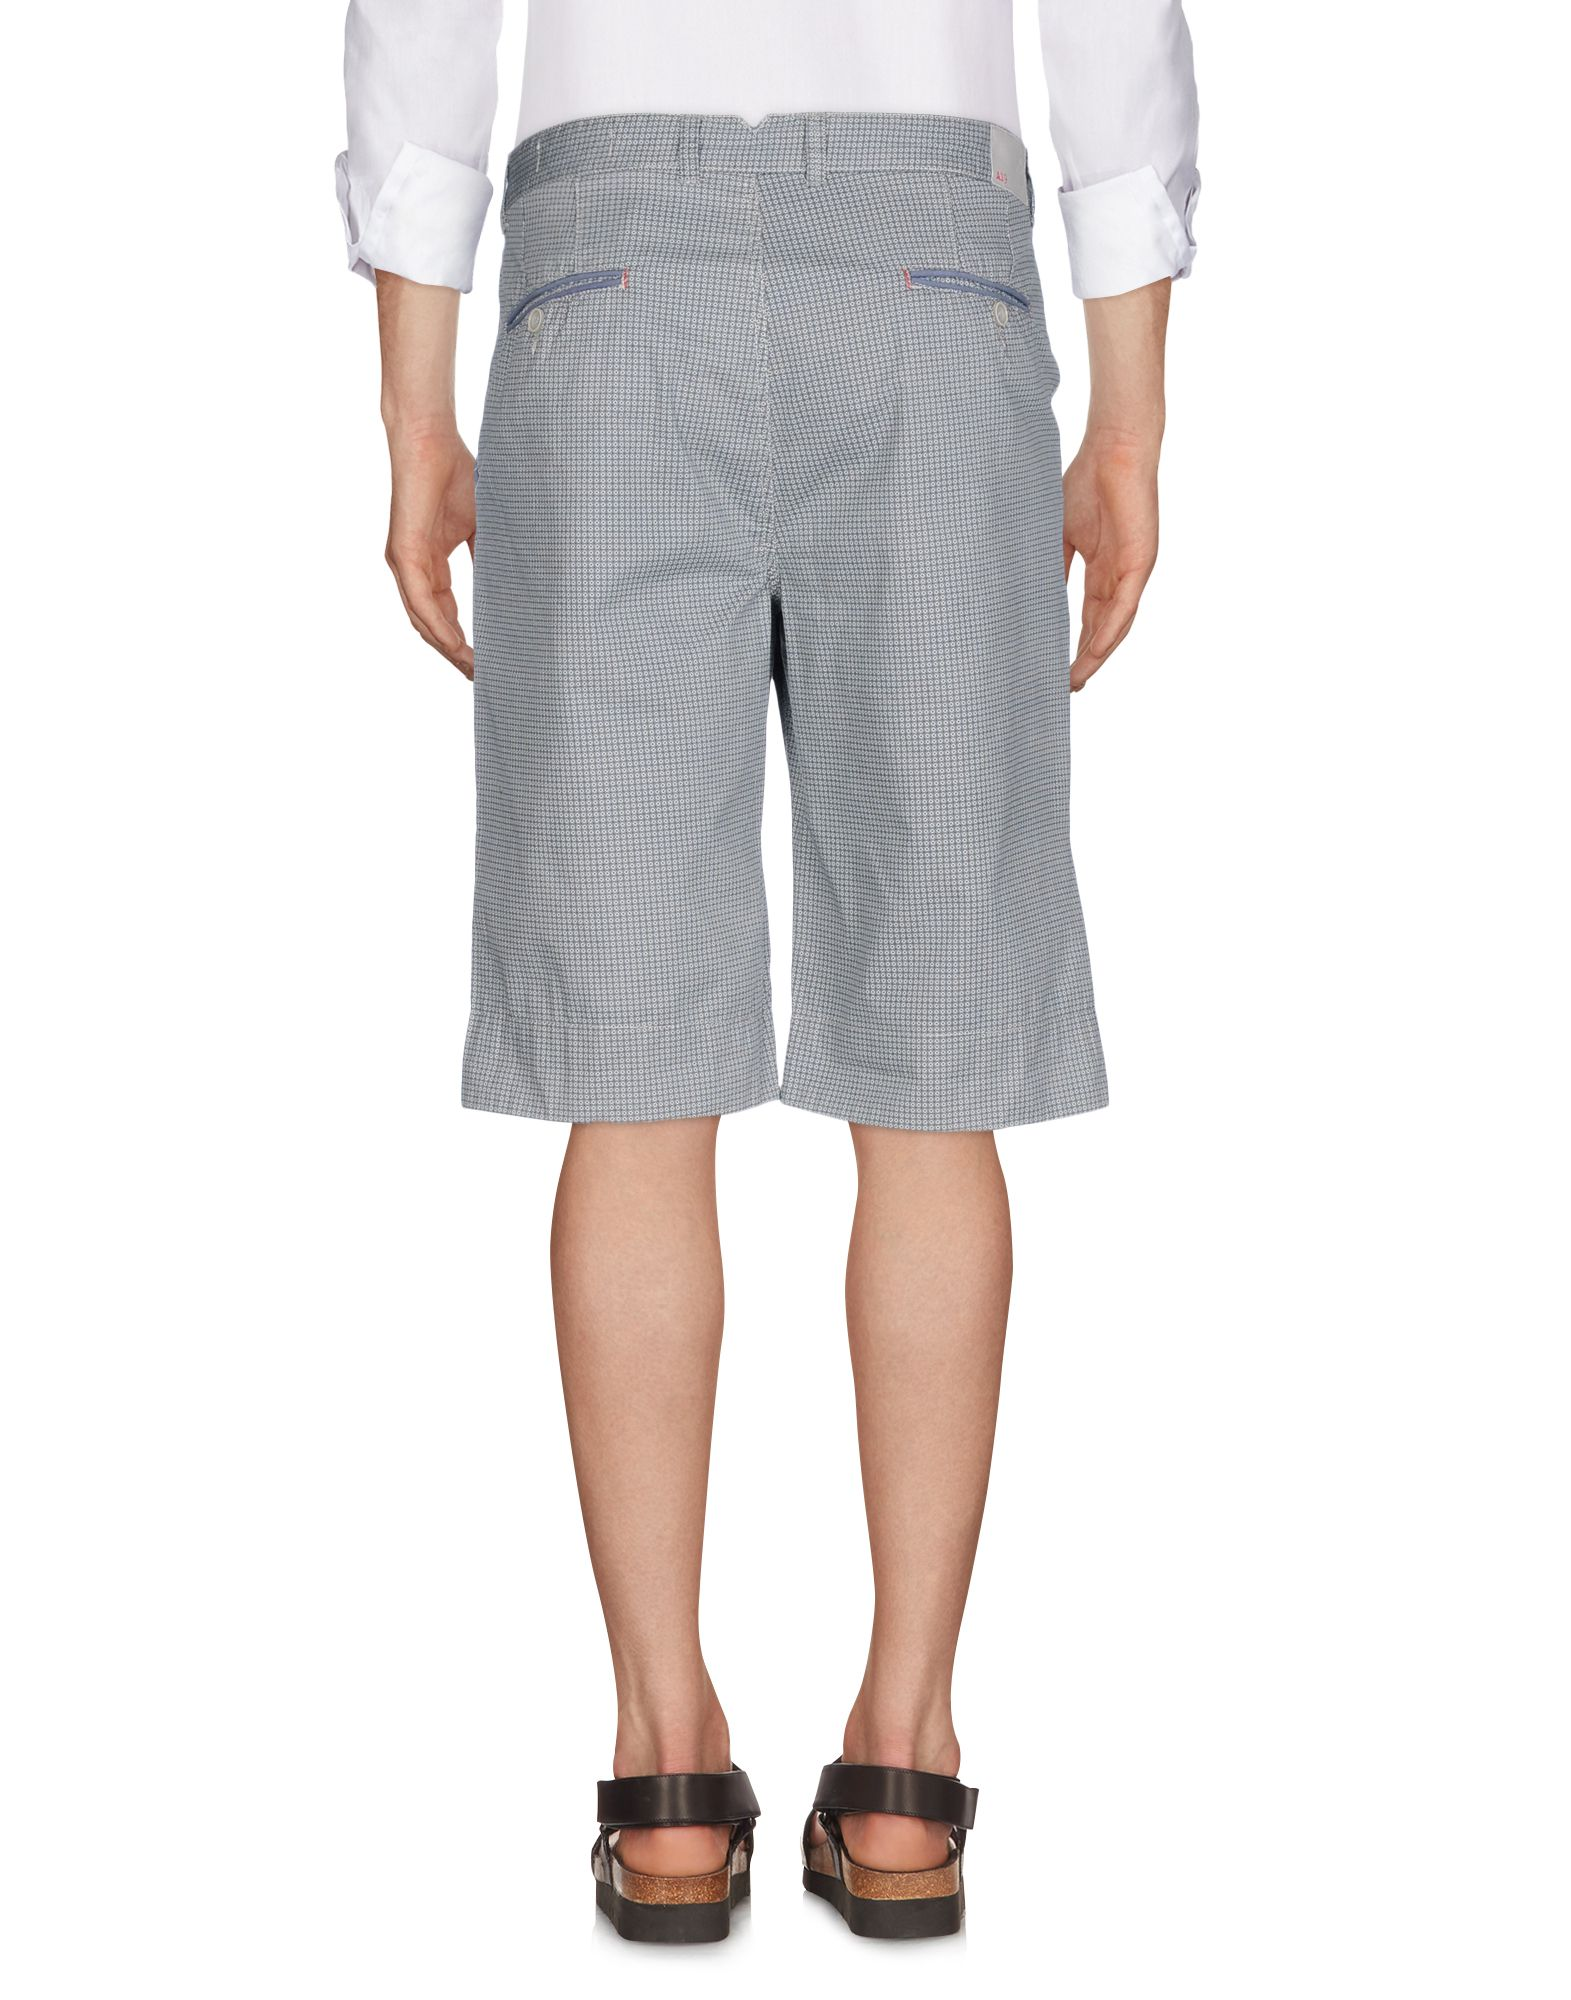 Shorts - & Bermuda Altatensione Uomo - Shorts 13150714TT 114998